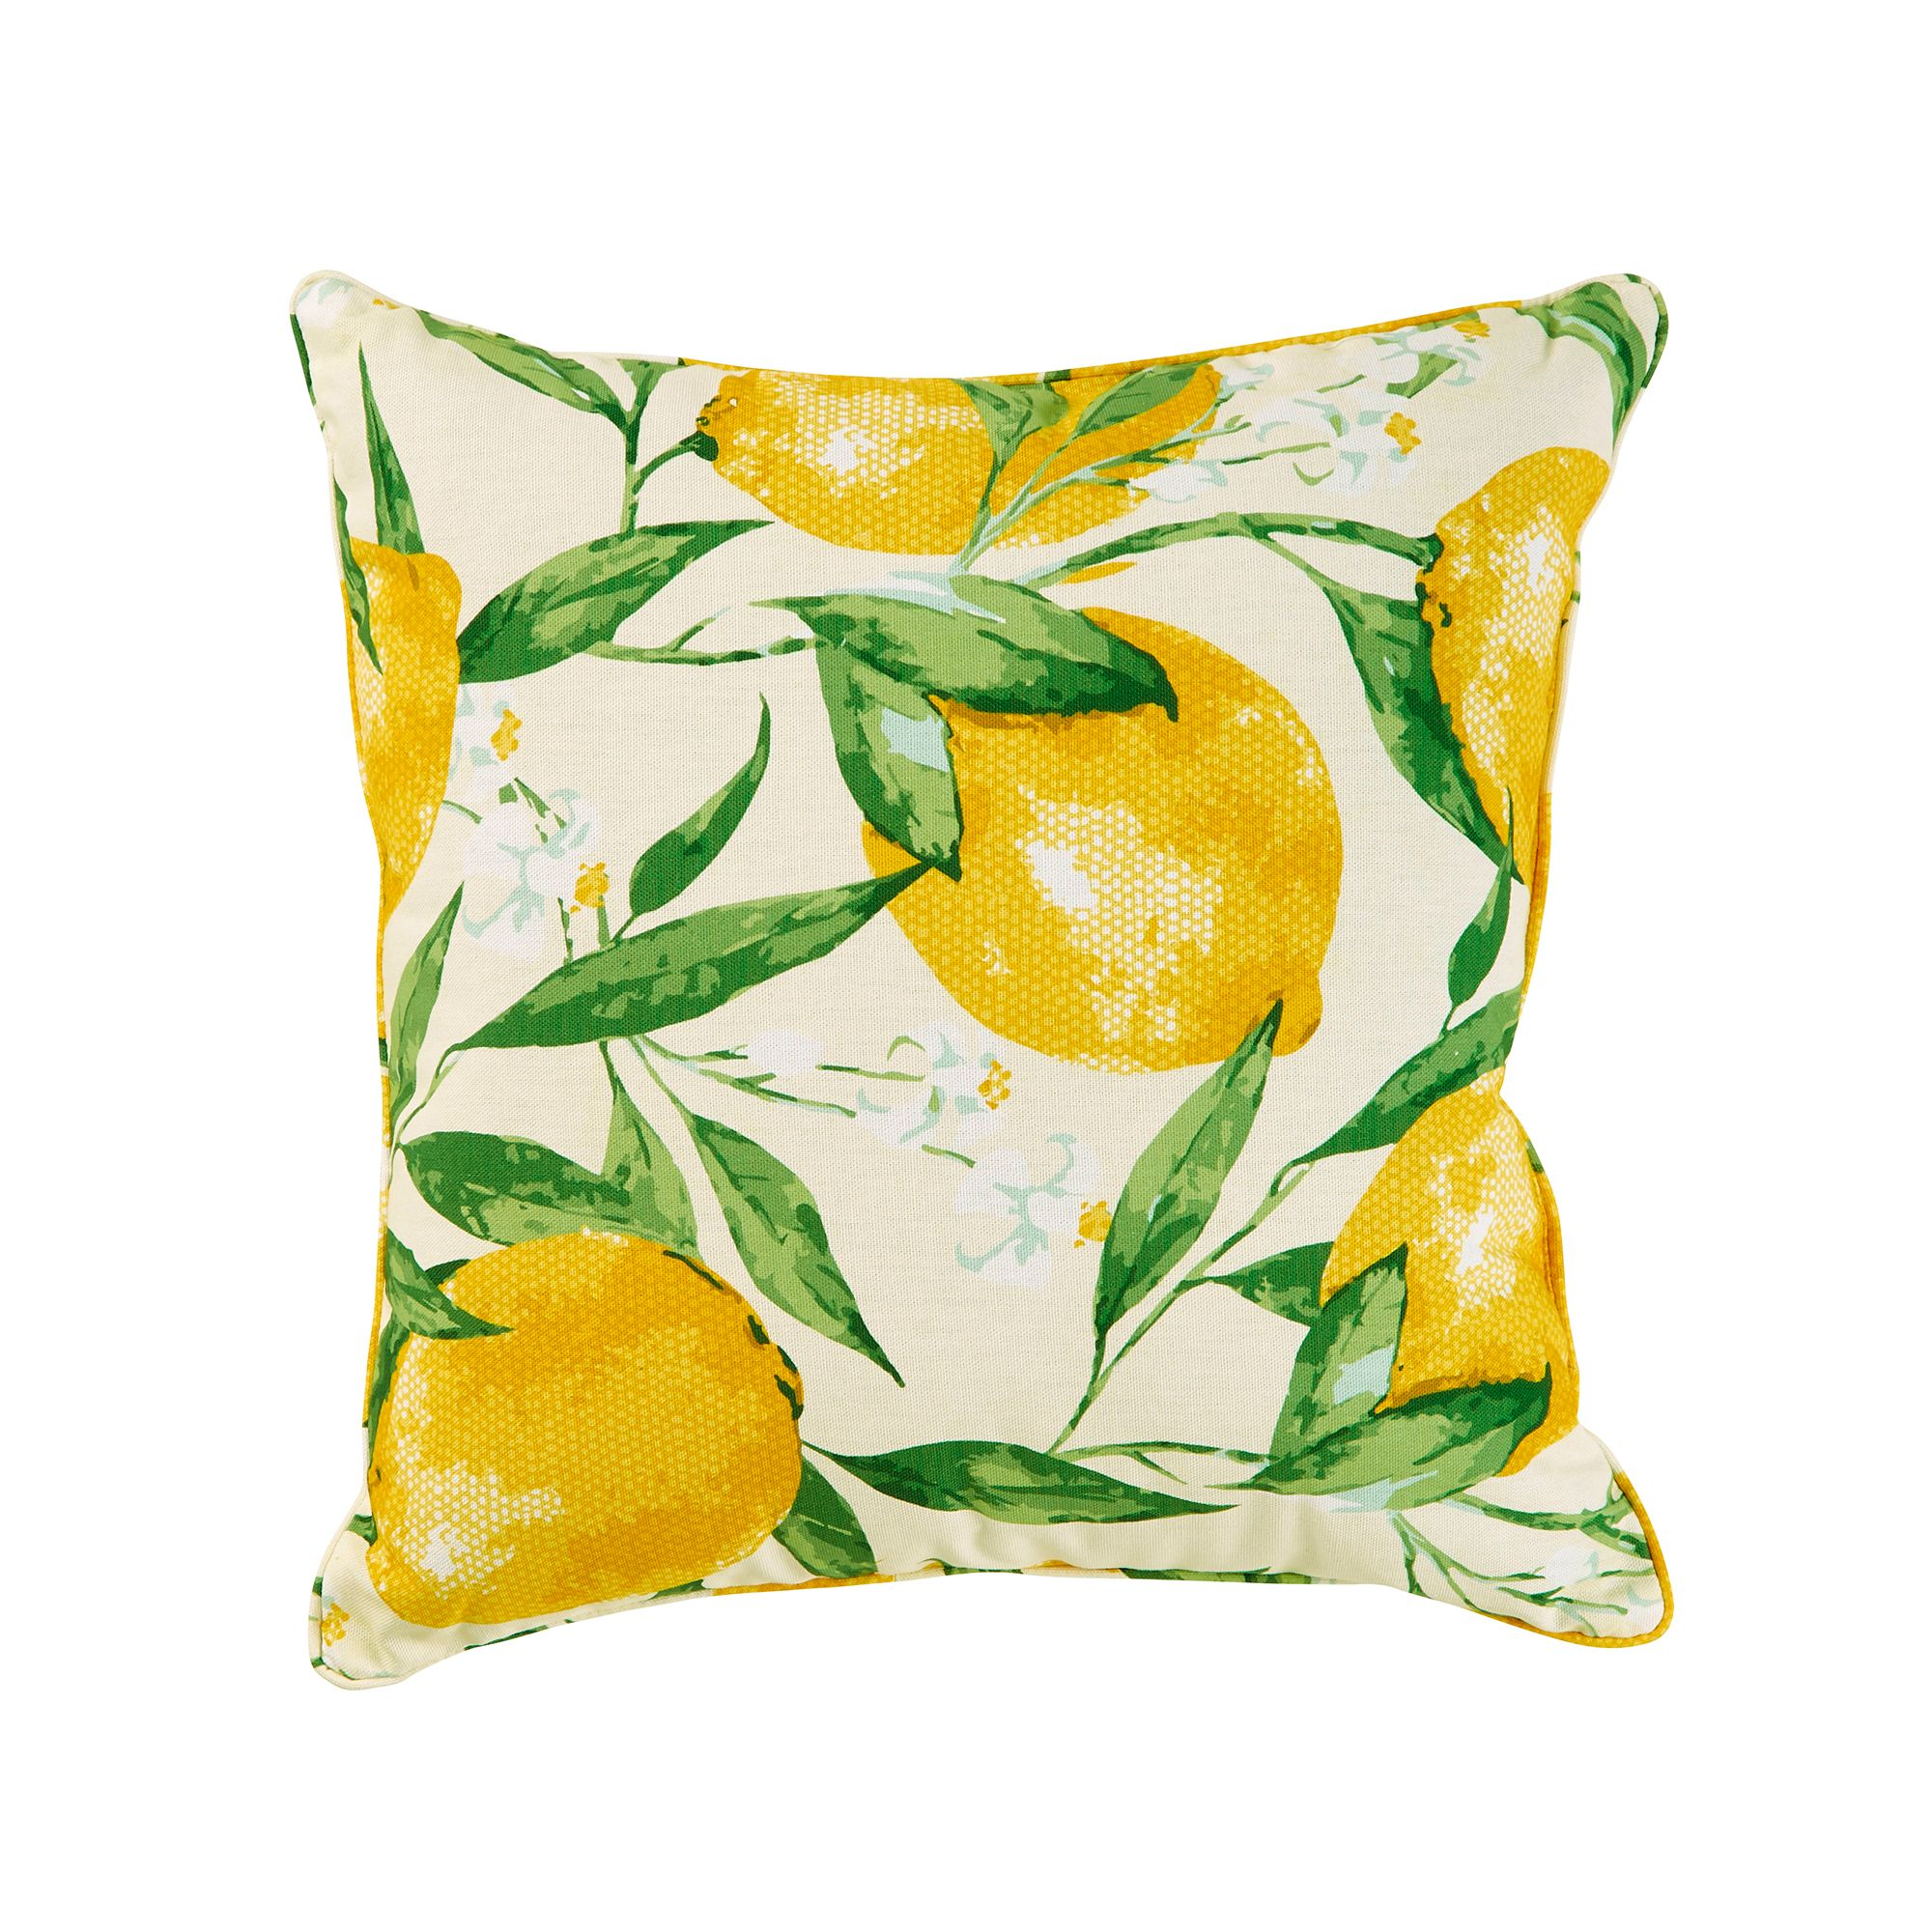 Lemon outdoor pillow